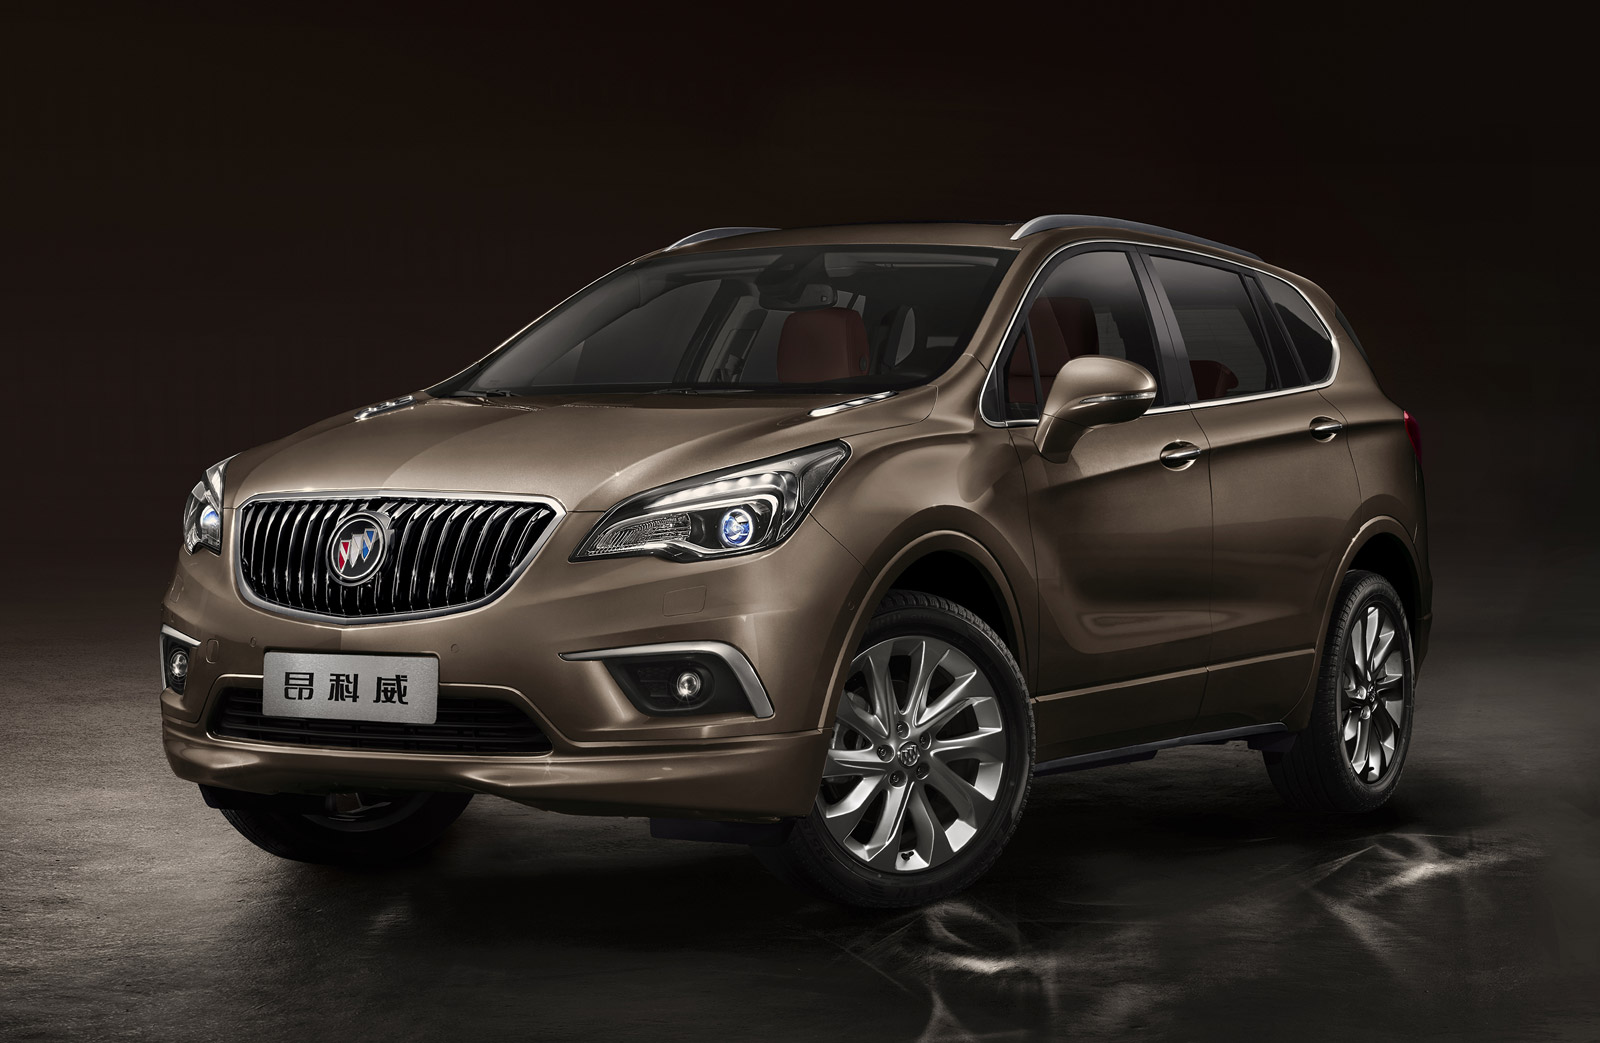 2015 Buick Envision Compact Crossover Unveiled In China